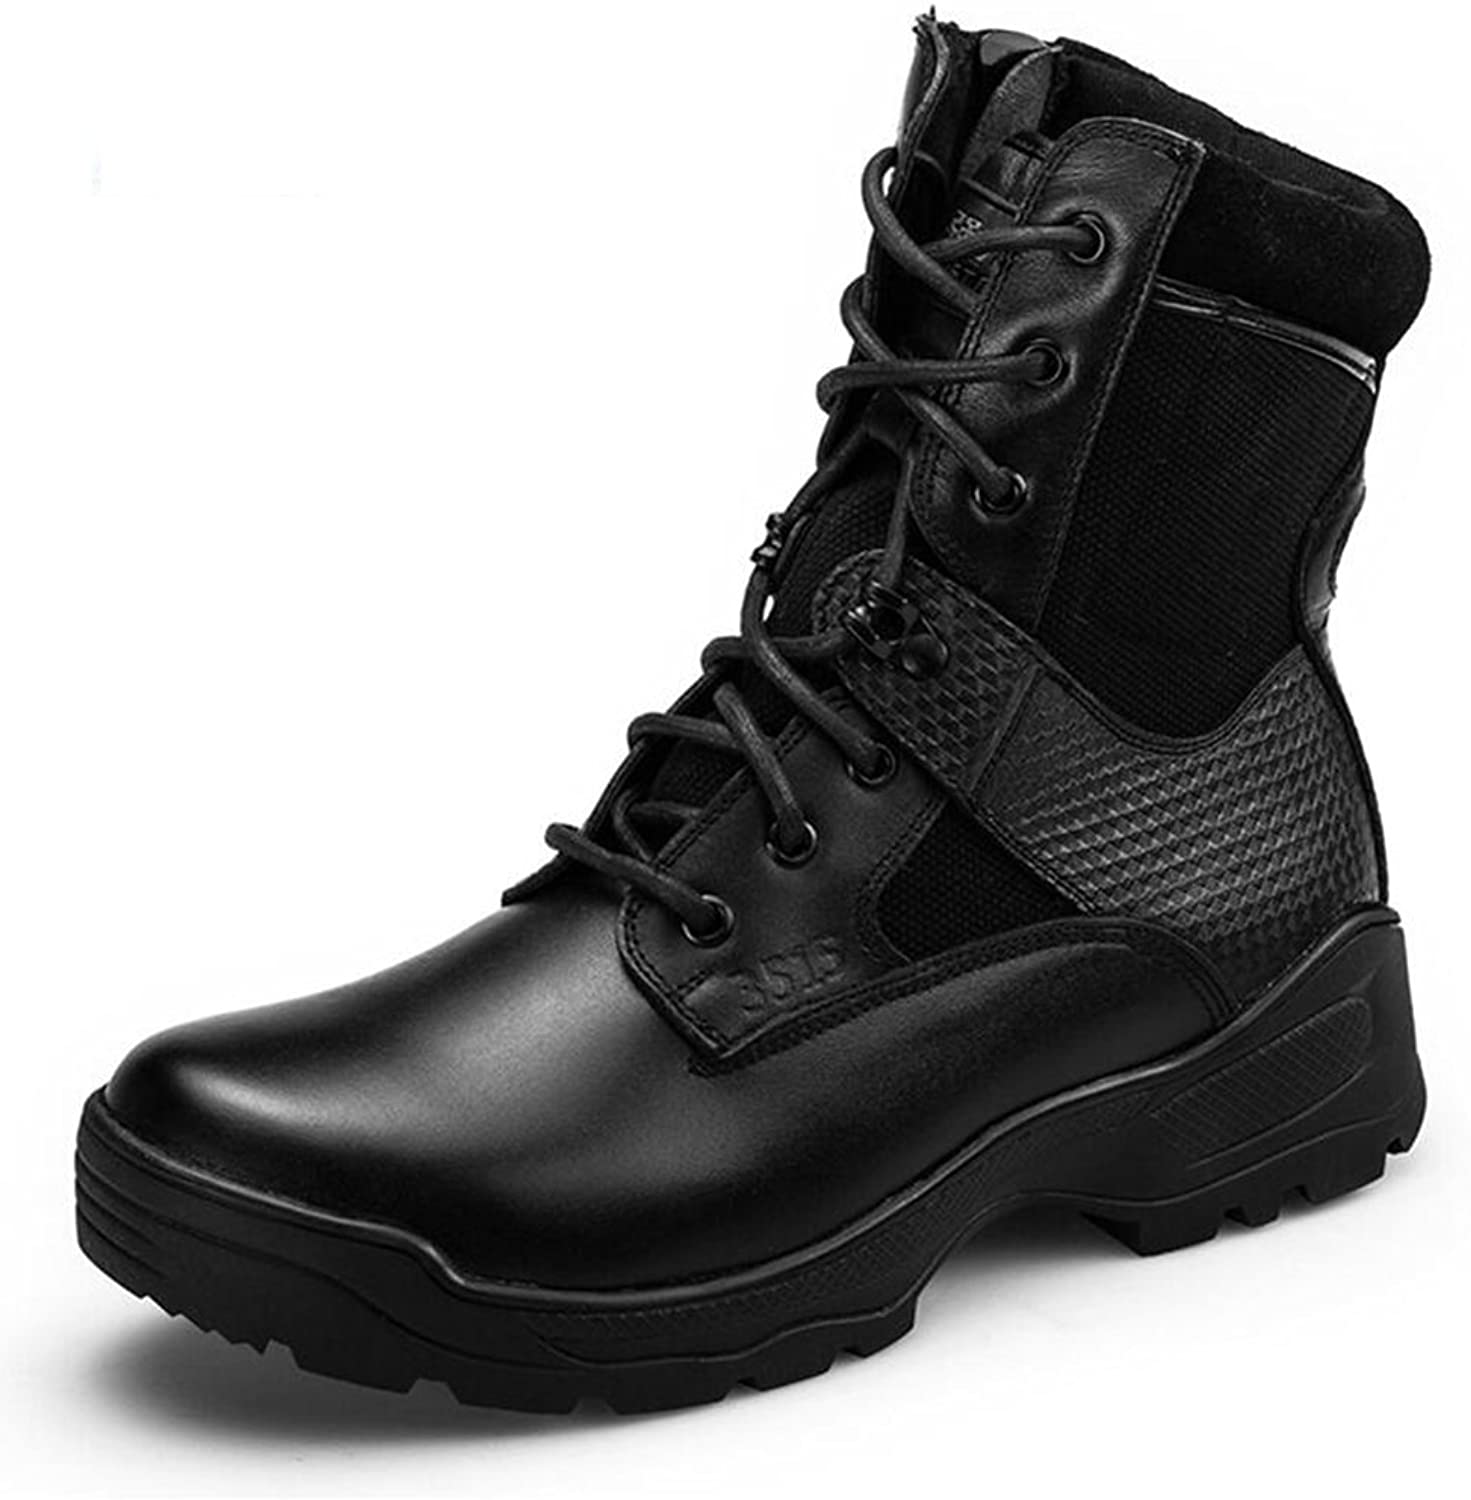 SUNNY Spring and Autumn Breathable PU Outdoor Hiking Boots Army Boots Special Forces Boots Black Safety (Size   EU42 UK8.5 CN43)